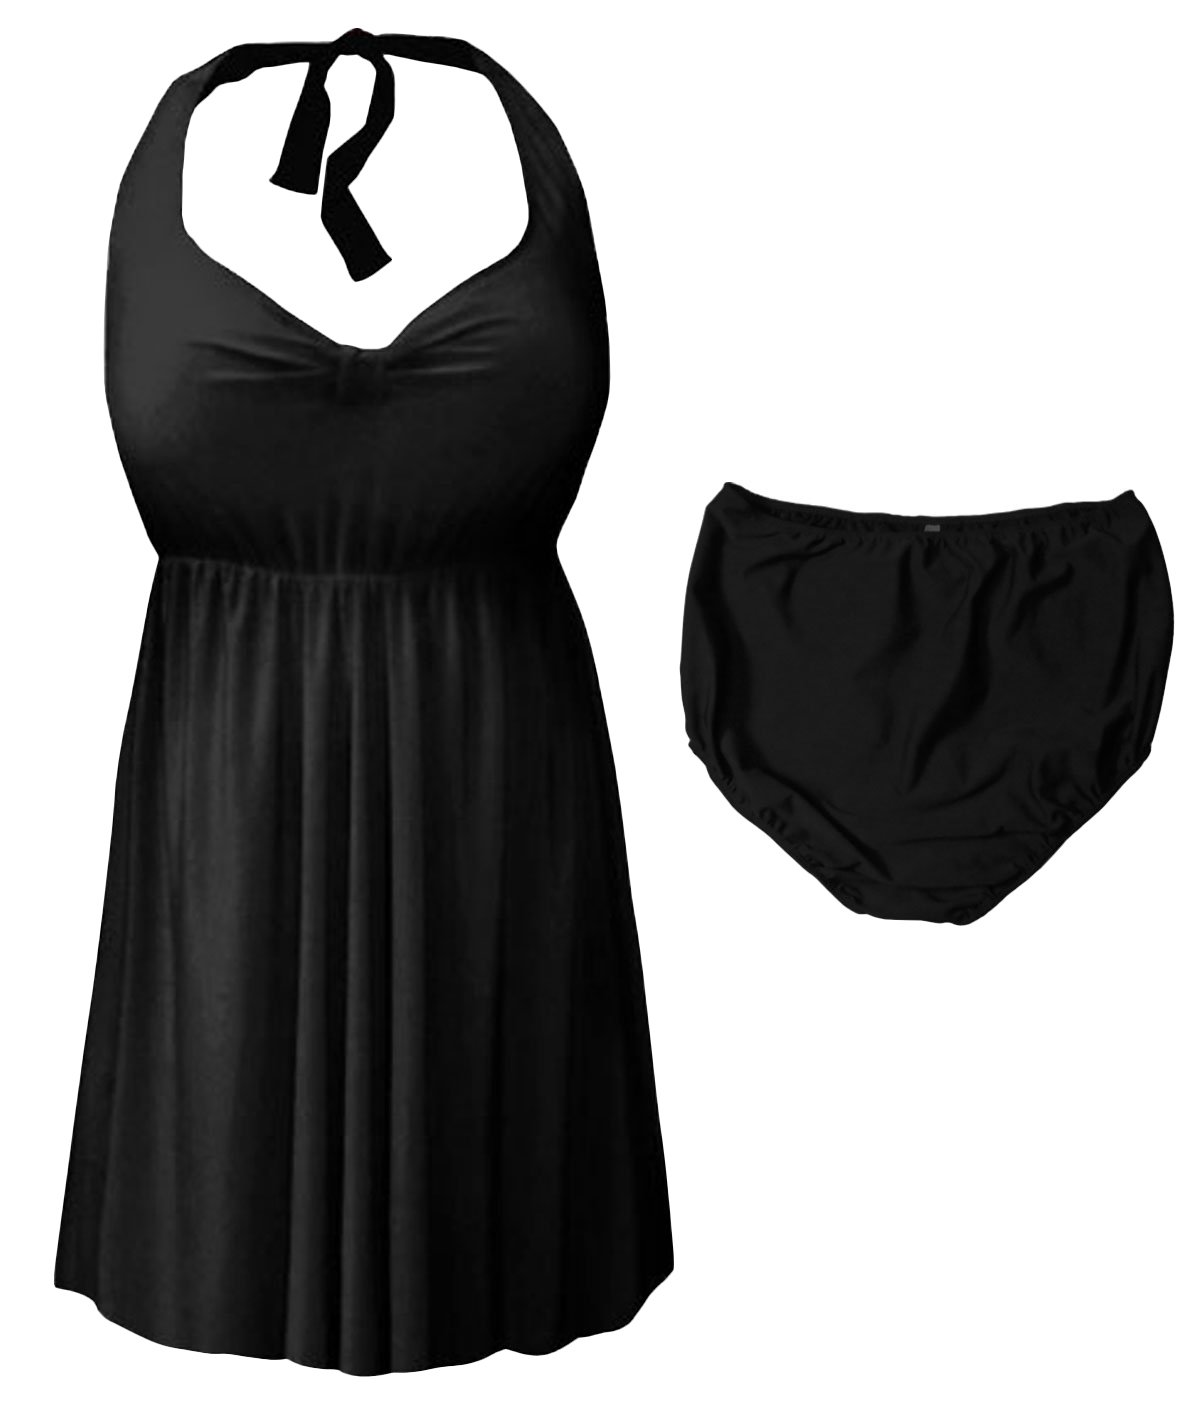 Sanctuarie Designs Black 2 Piece Halter Style Plus Size Swimdress 6X